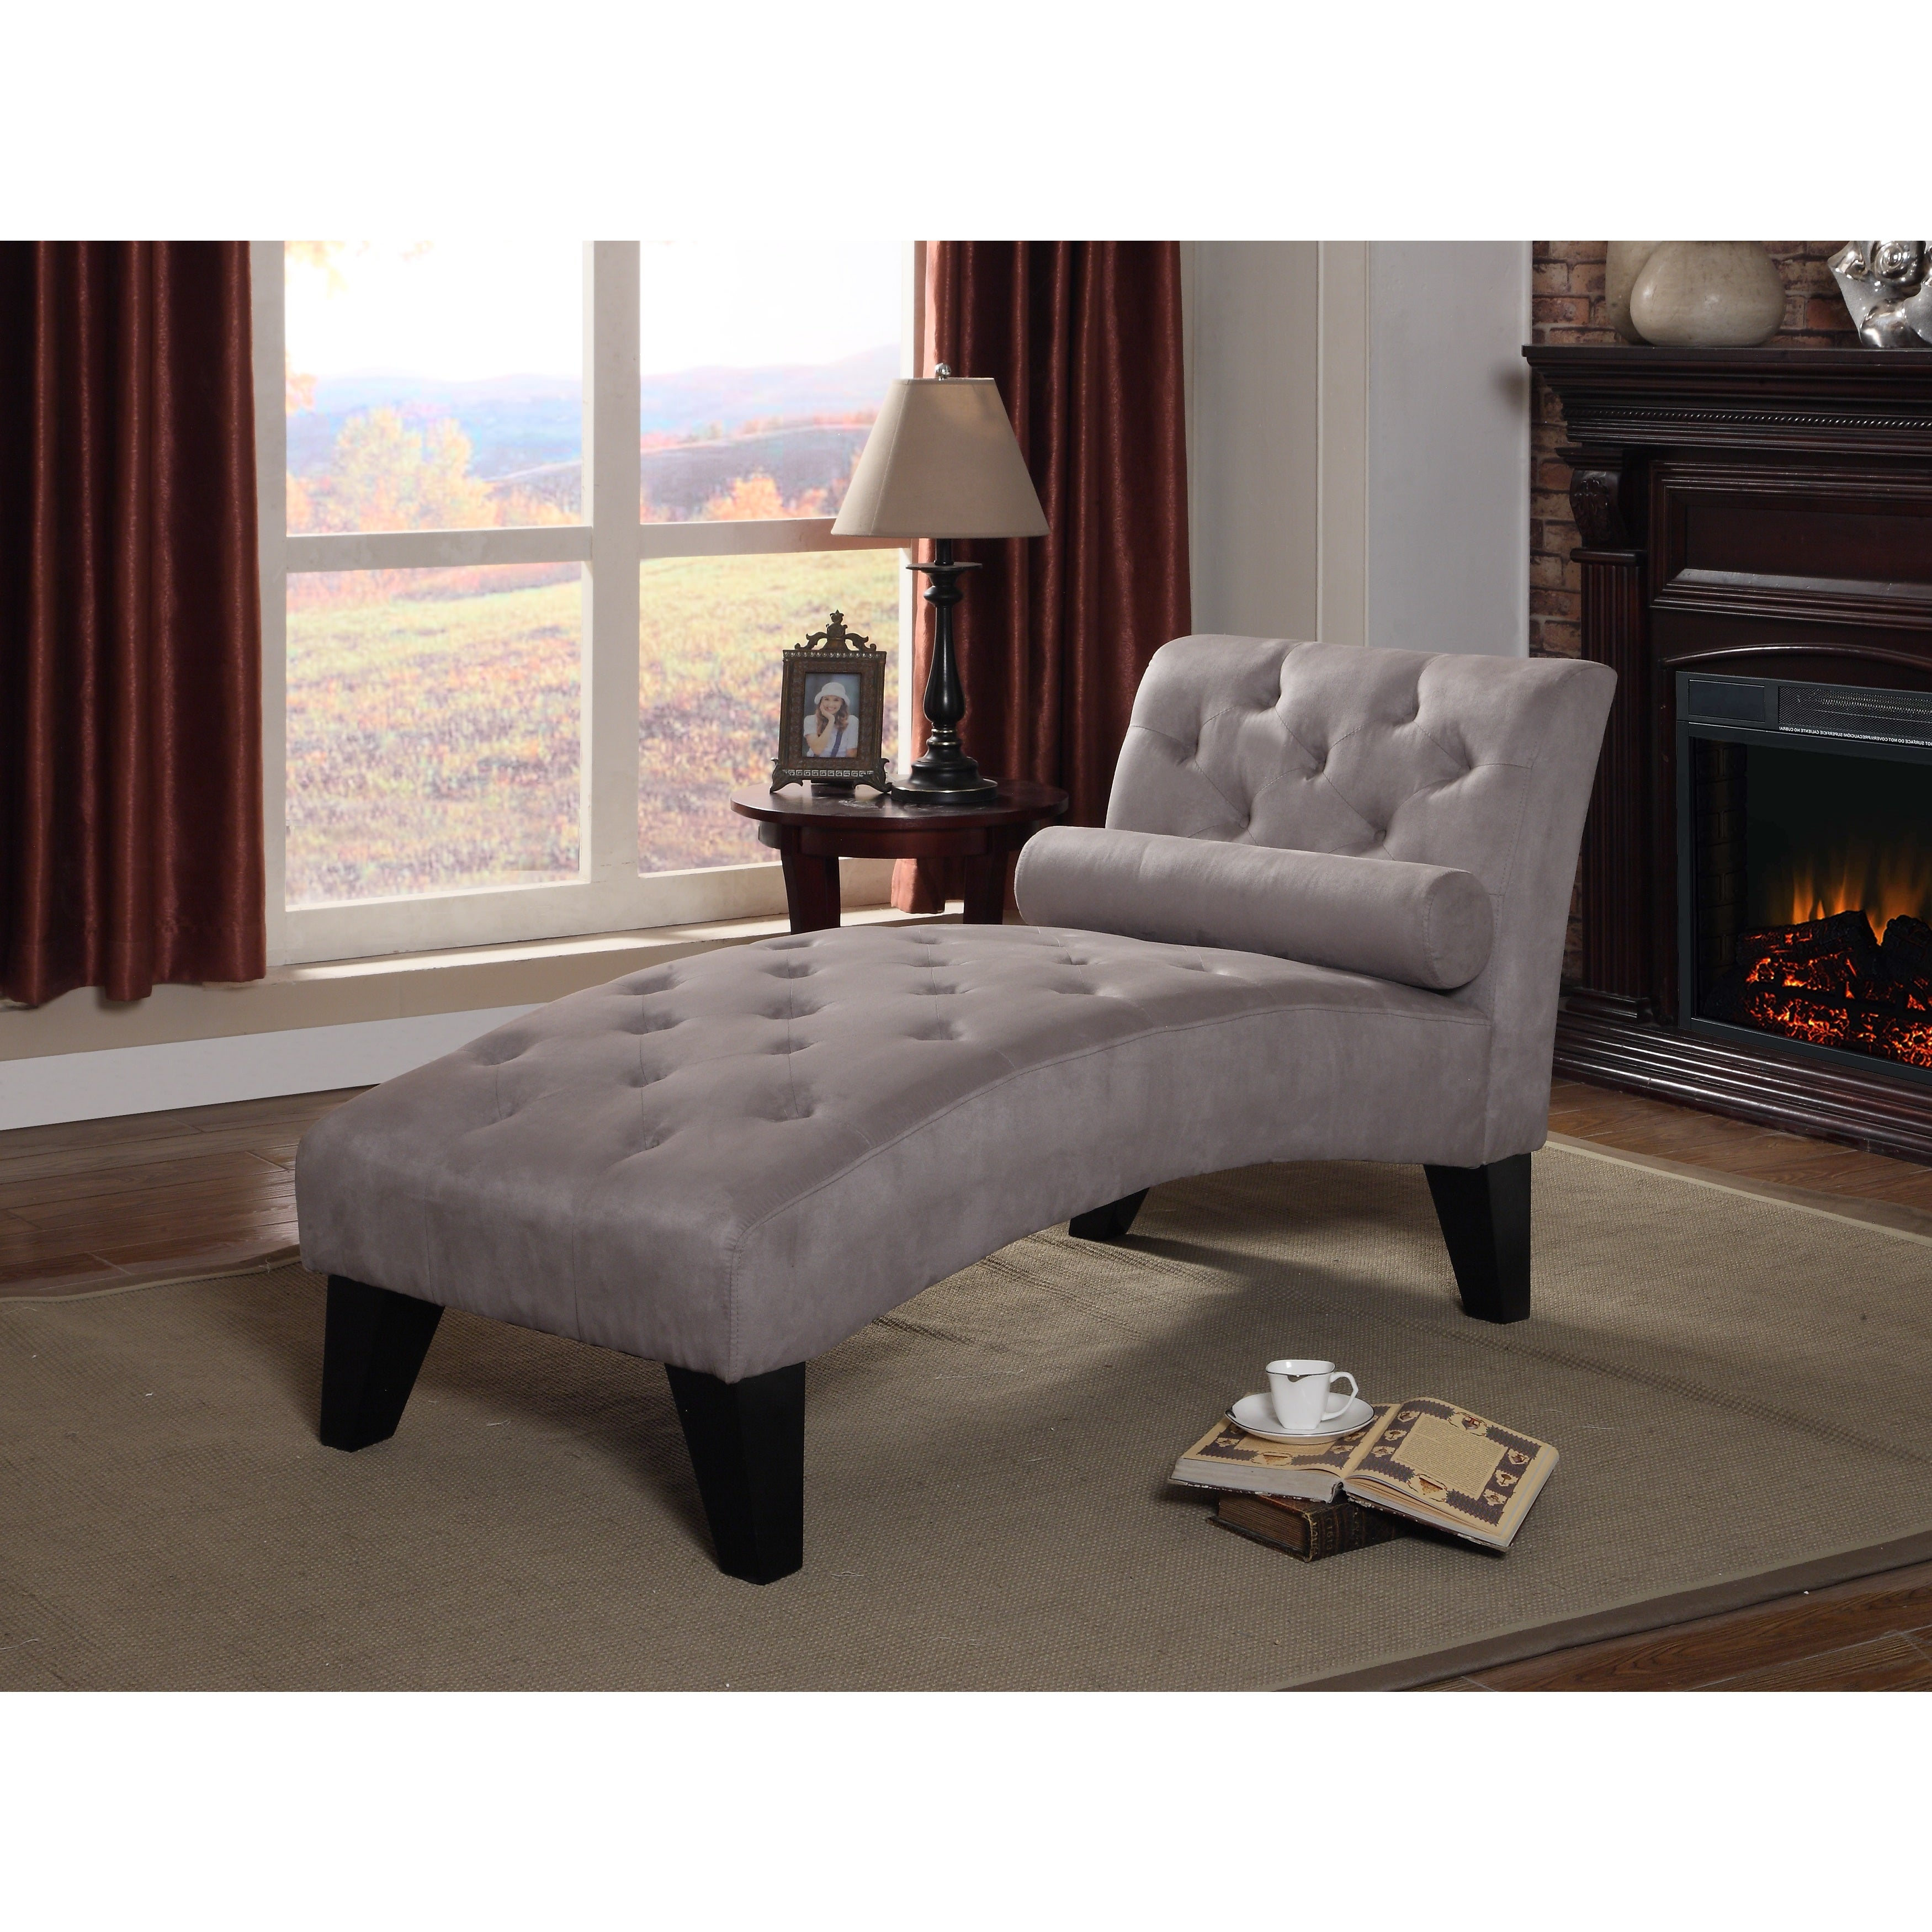 Copper Grove Clayton Grey Tufted Microfiber Chaise Lounge Free Shipping Today 23122746